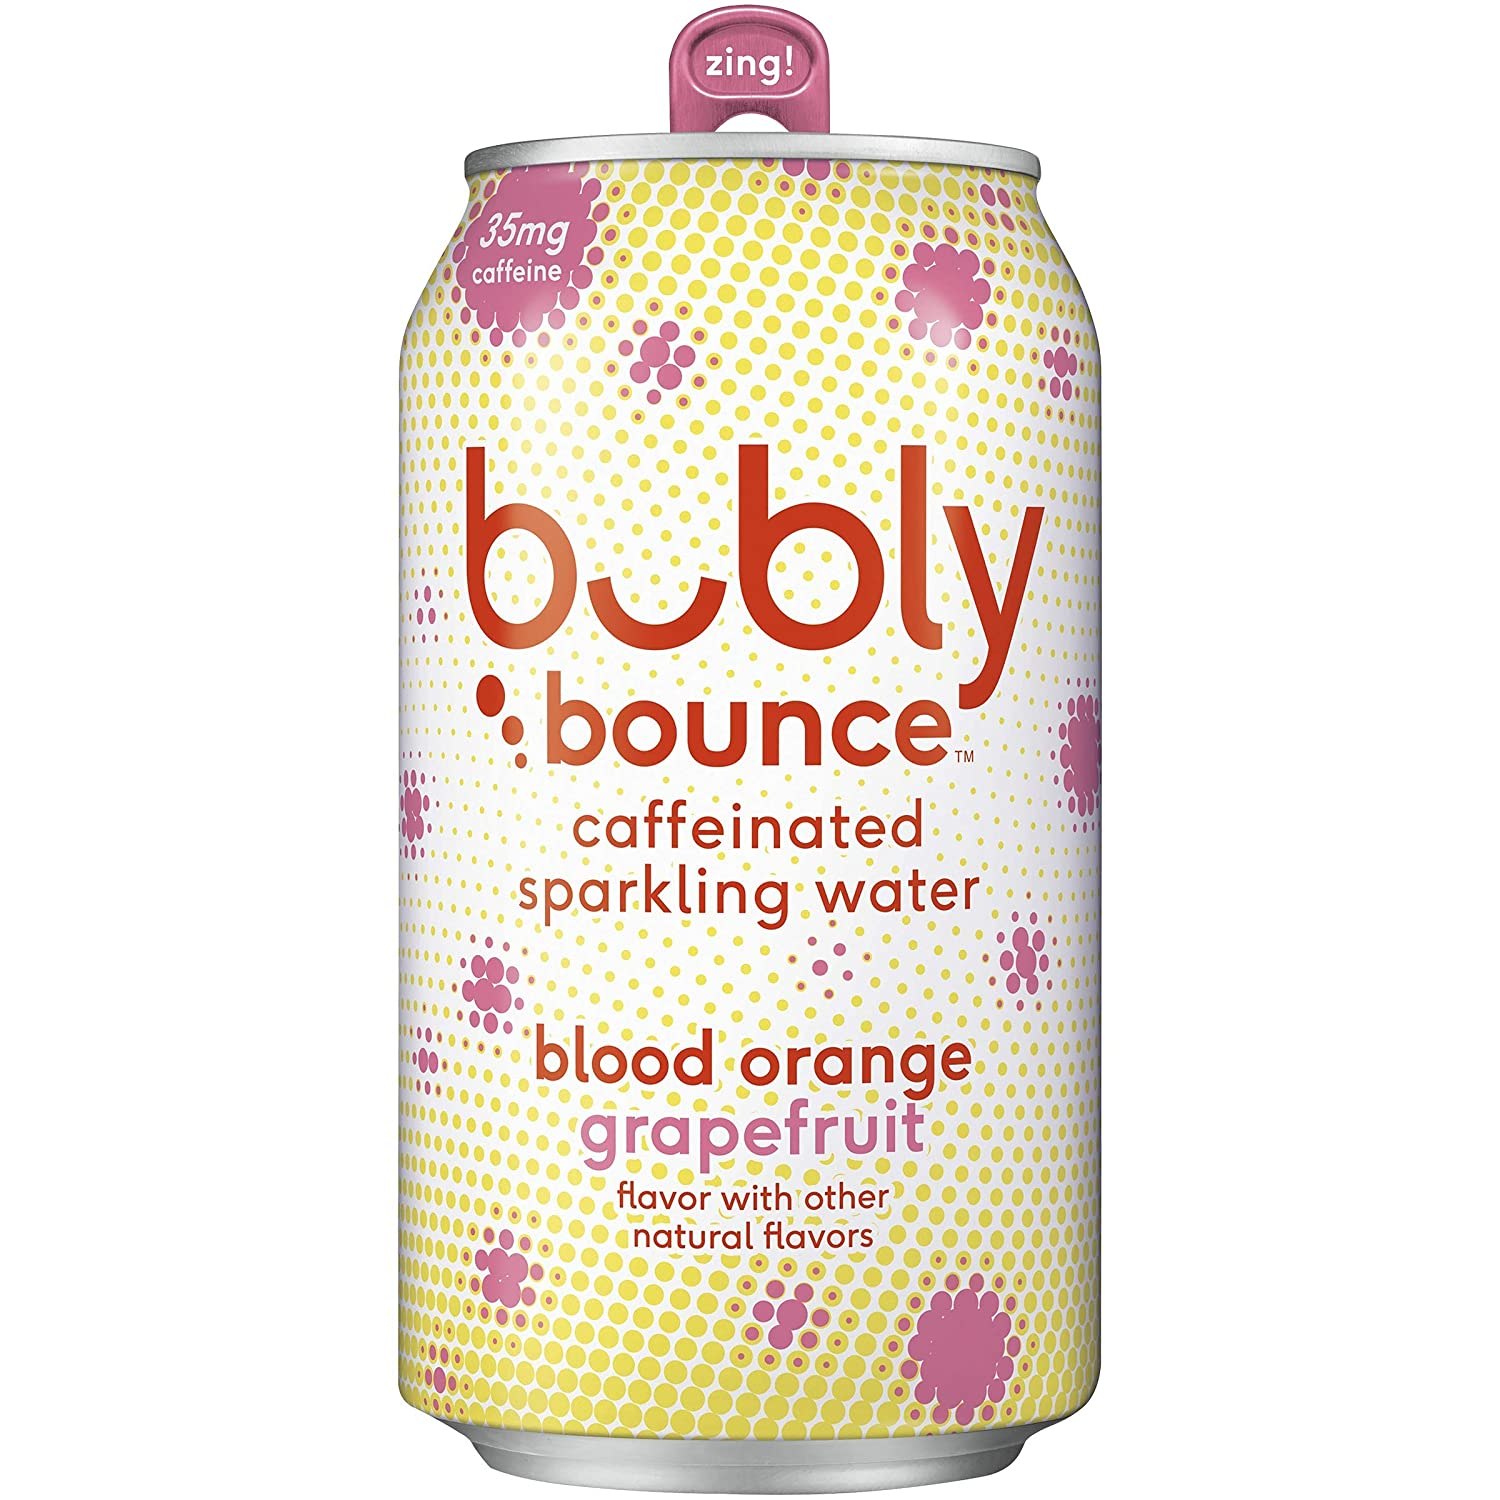 bubly Bounce Caffeinated Blood Orange Grapefruit Sparkling Water (Pack of 18)